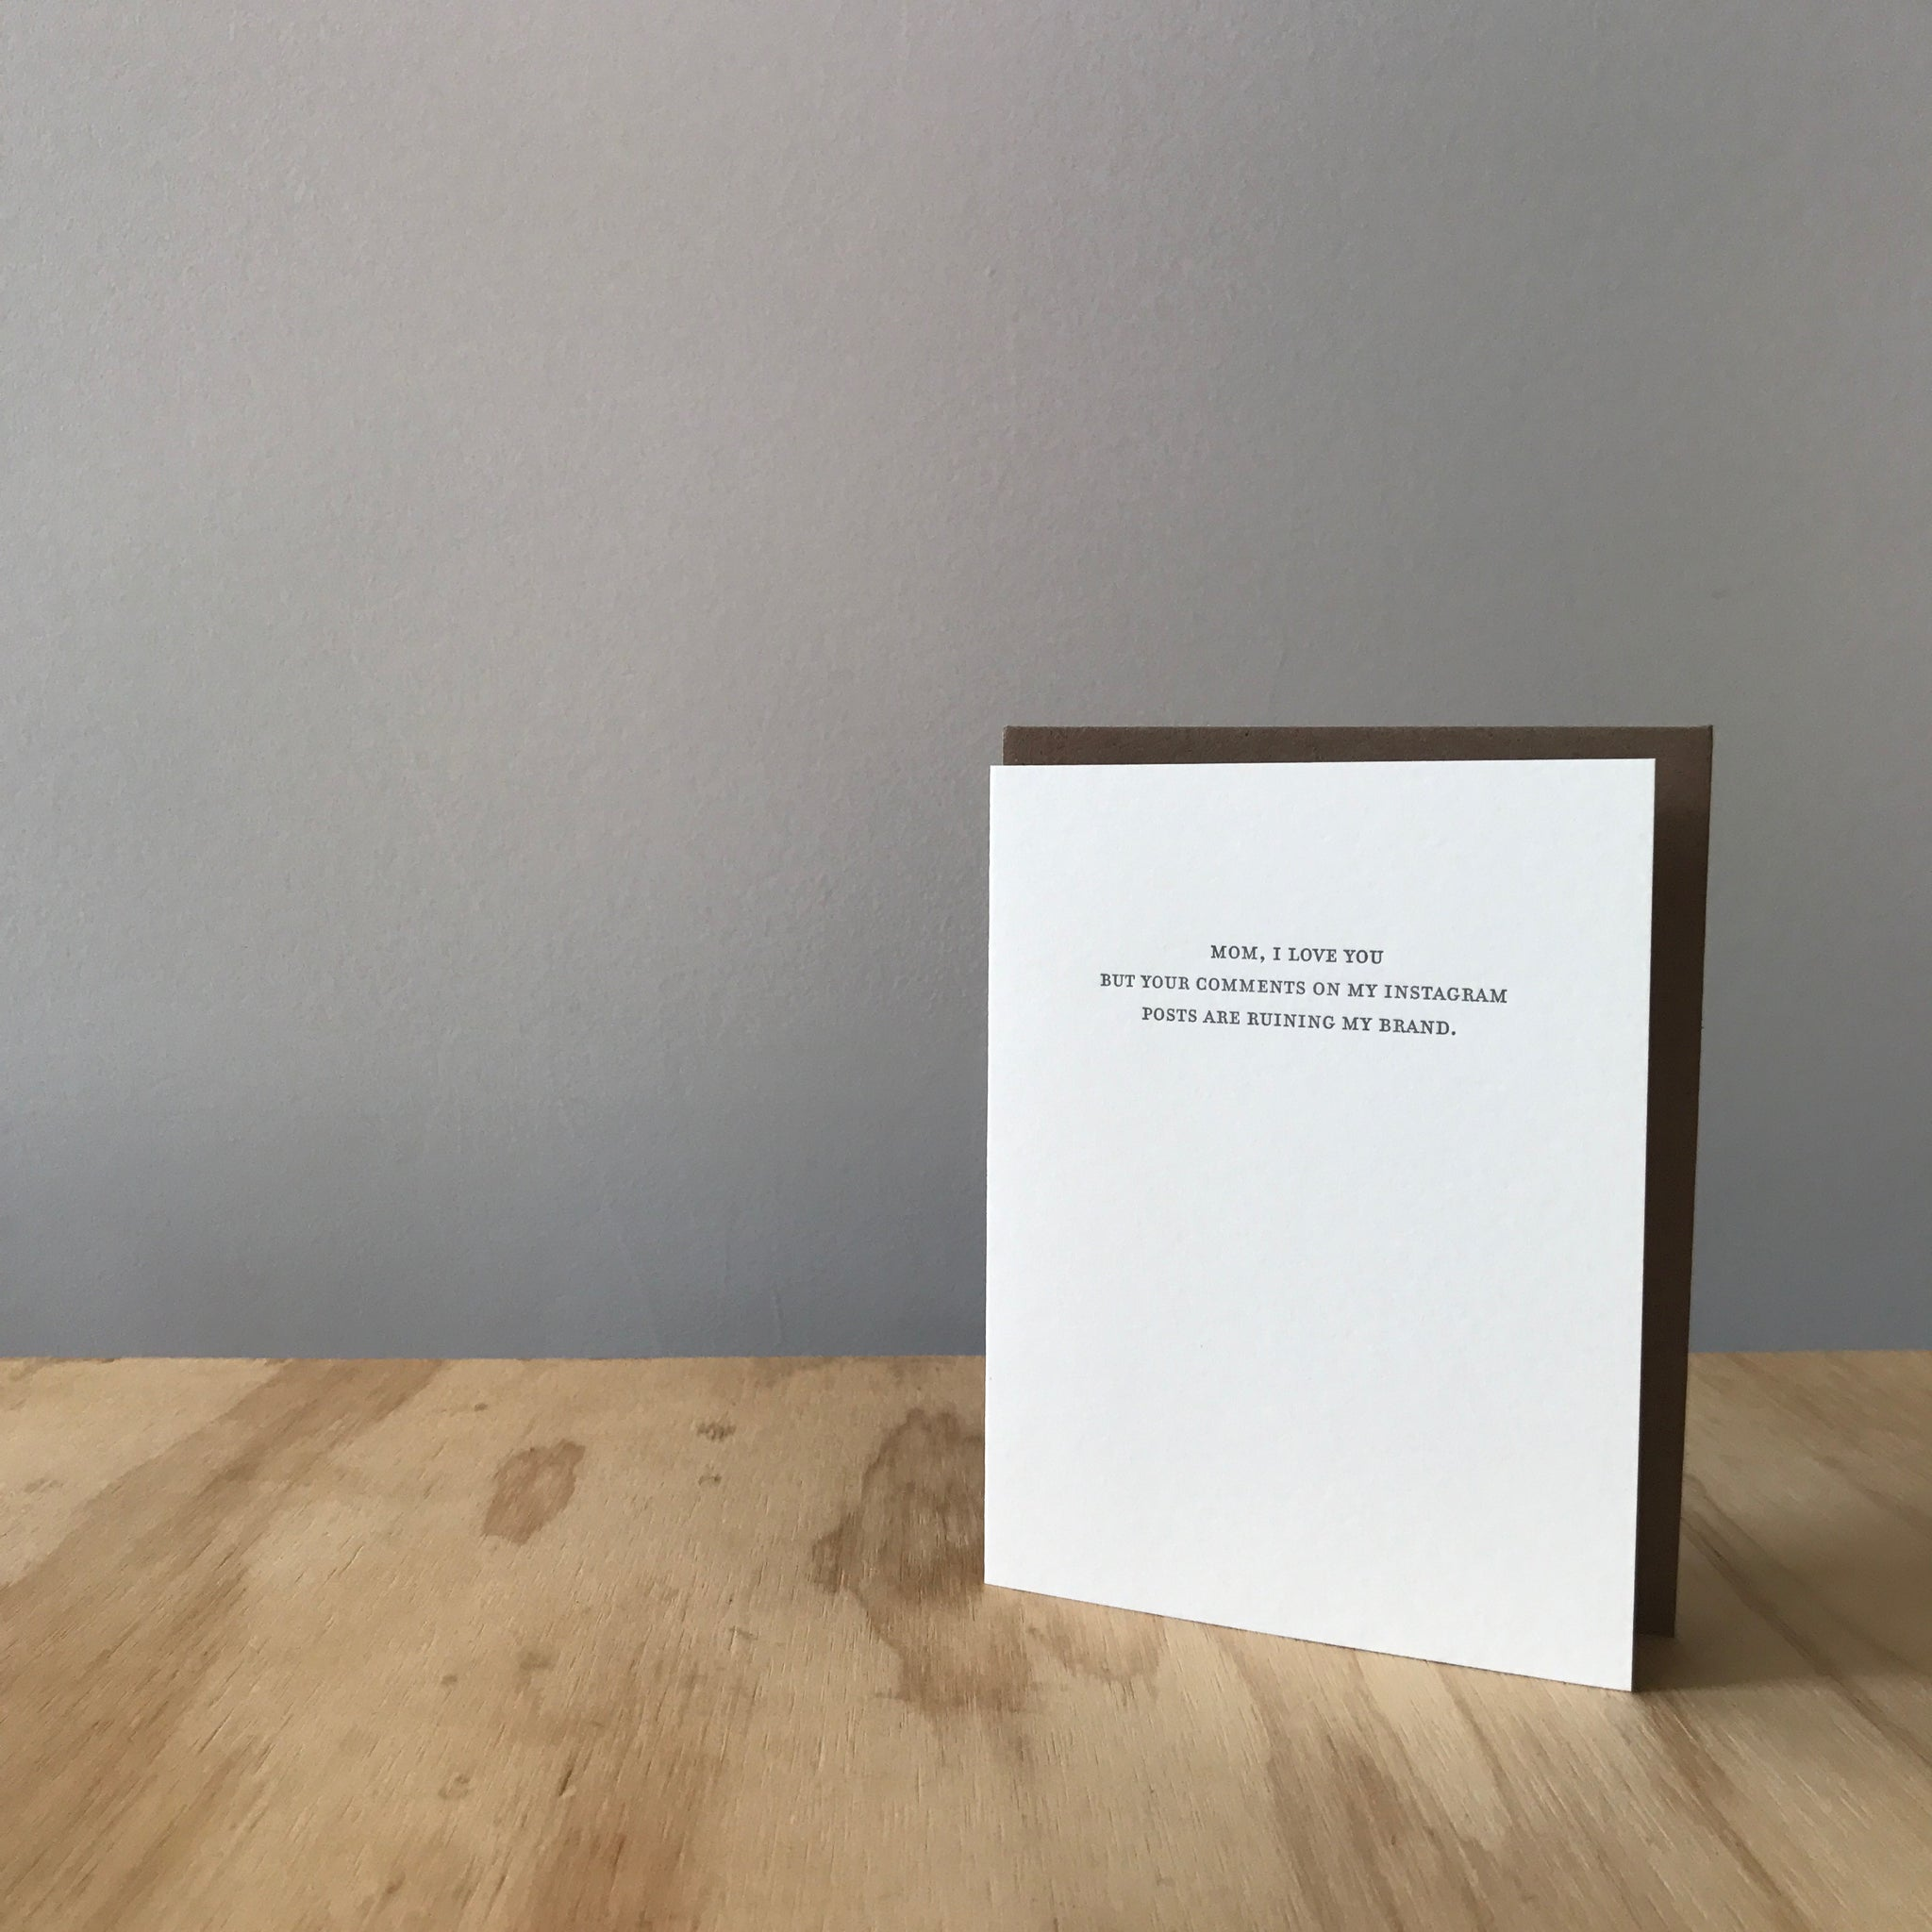 Mild Confessions: INSTA COMMENTS Letterpress Greeting Card by Sapling Press